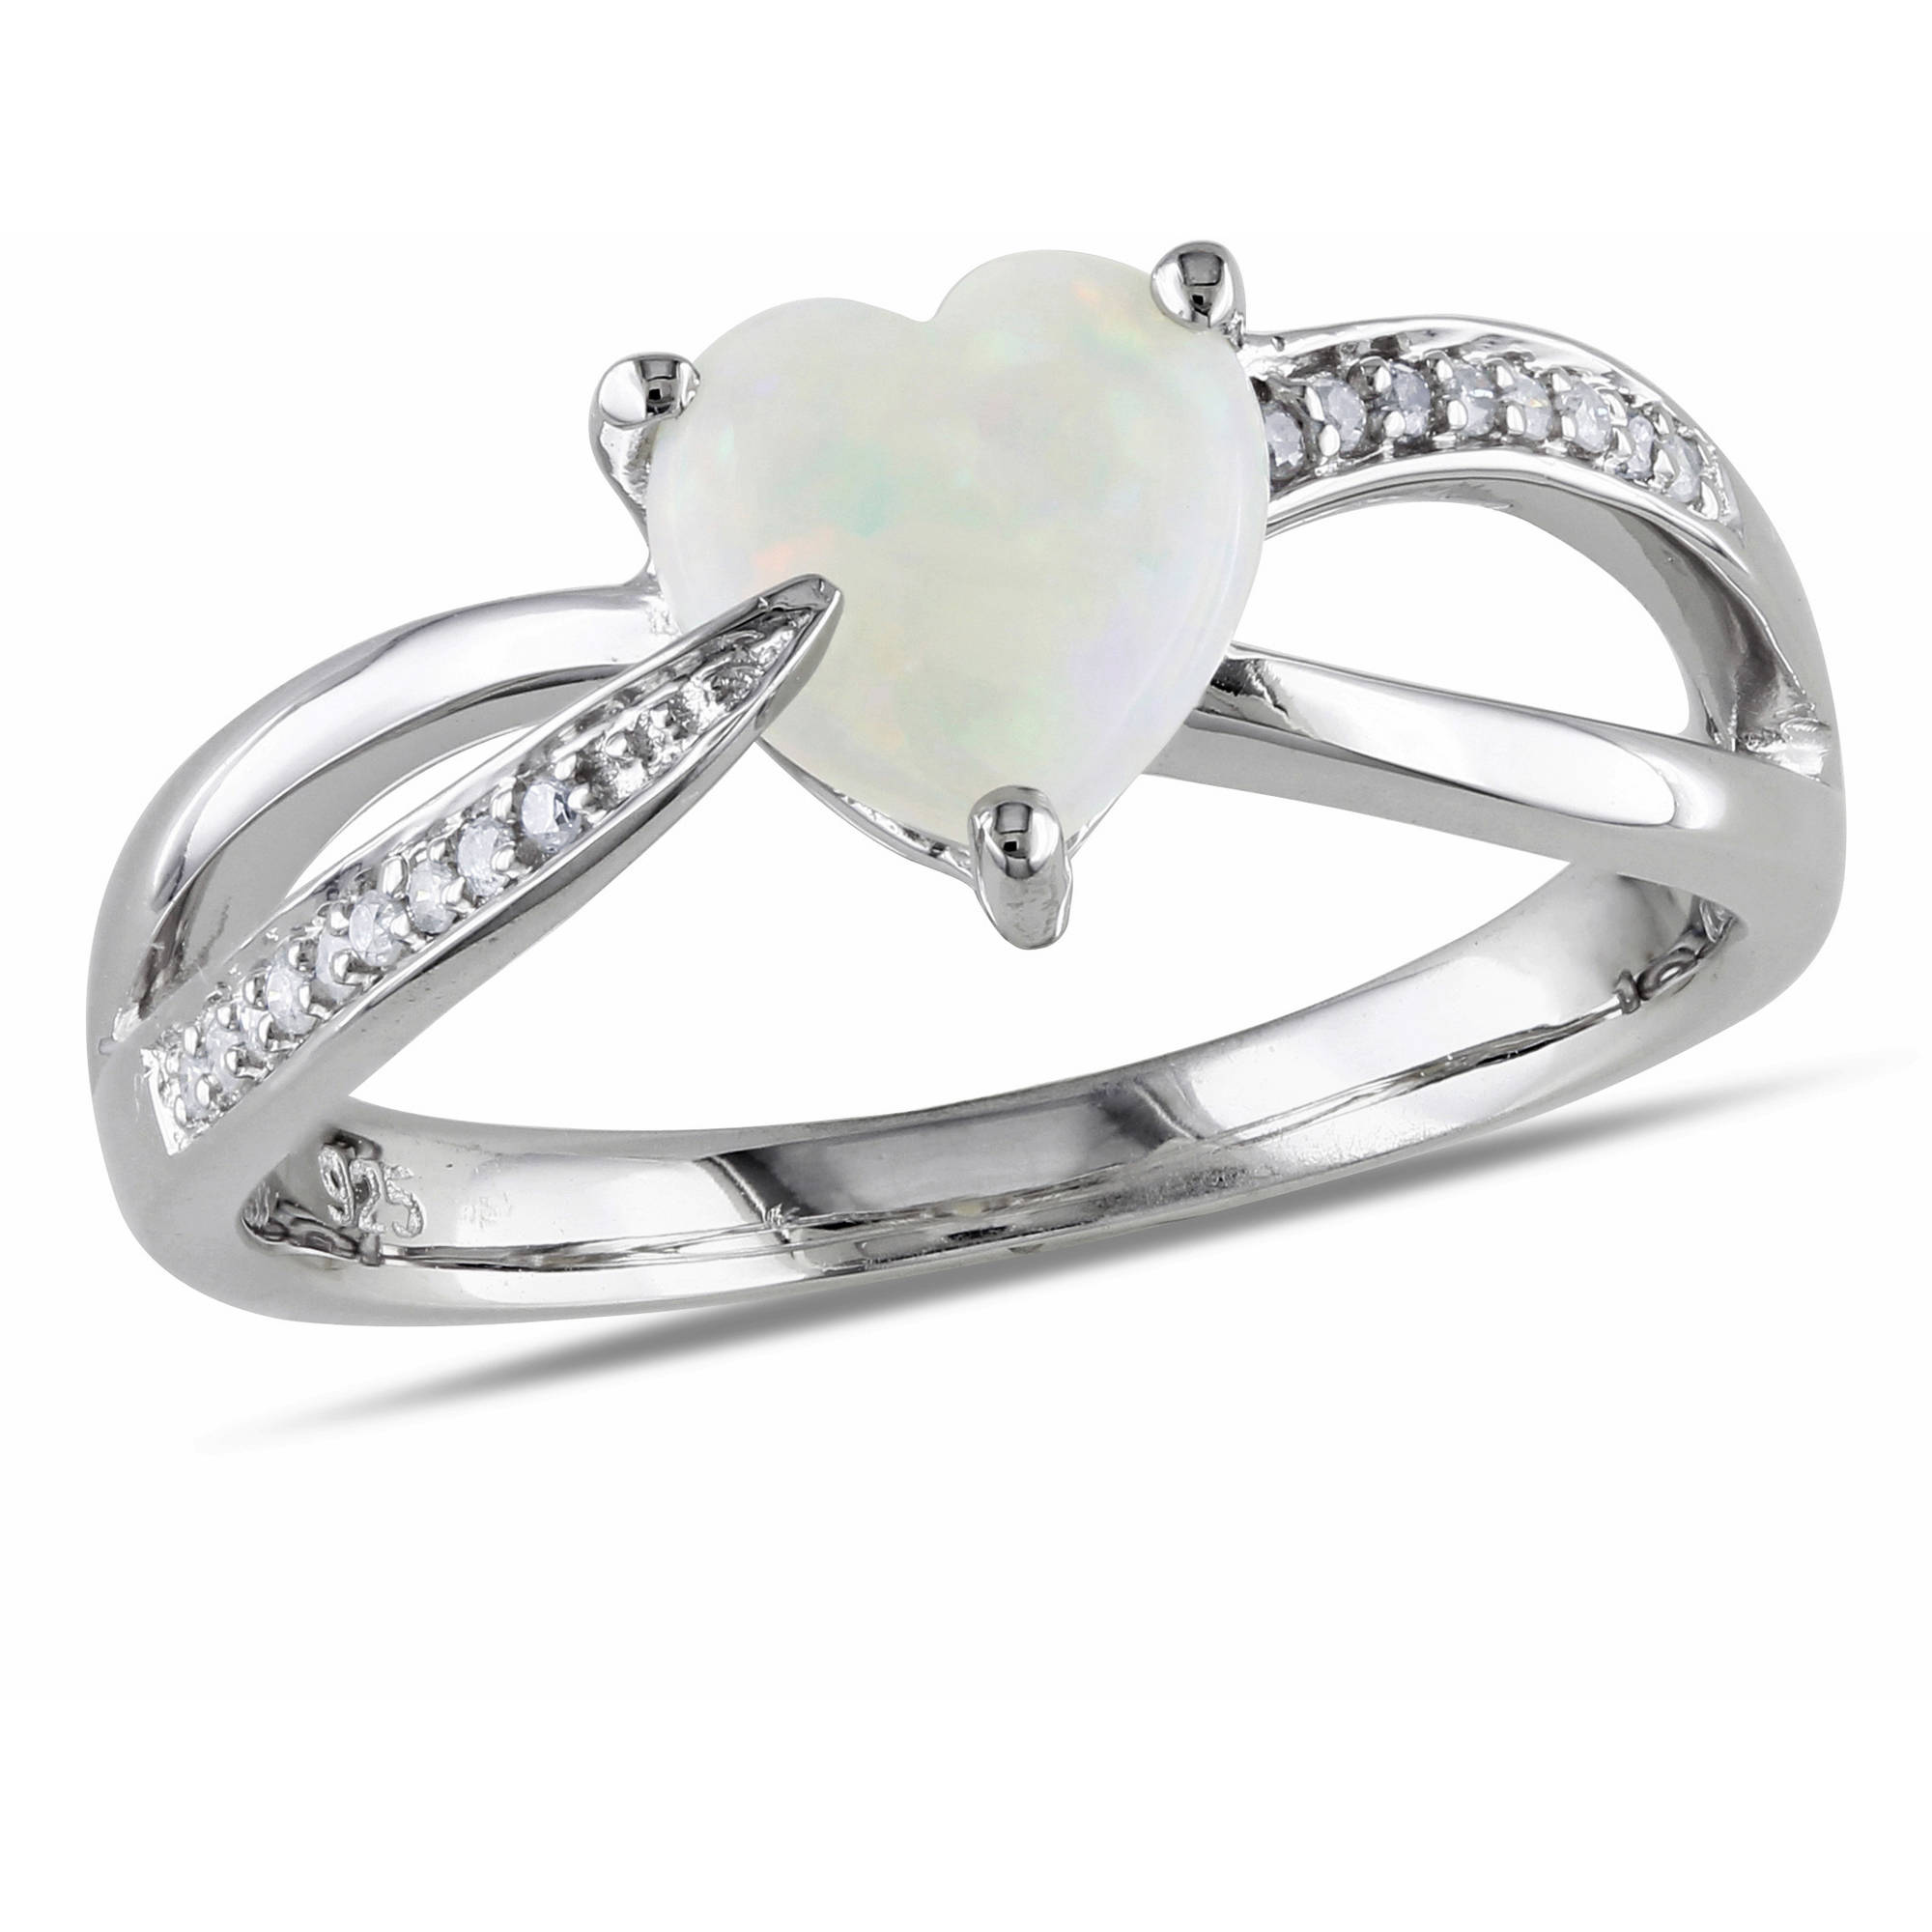 Miabella 7/8 Carat T.G.W. Opal and Diamond-Accent Sterling Silver Heart Ring